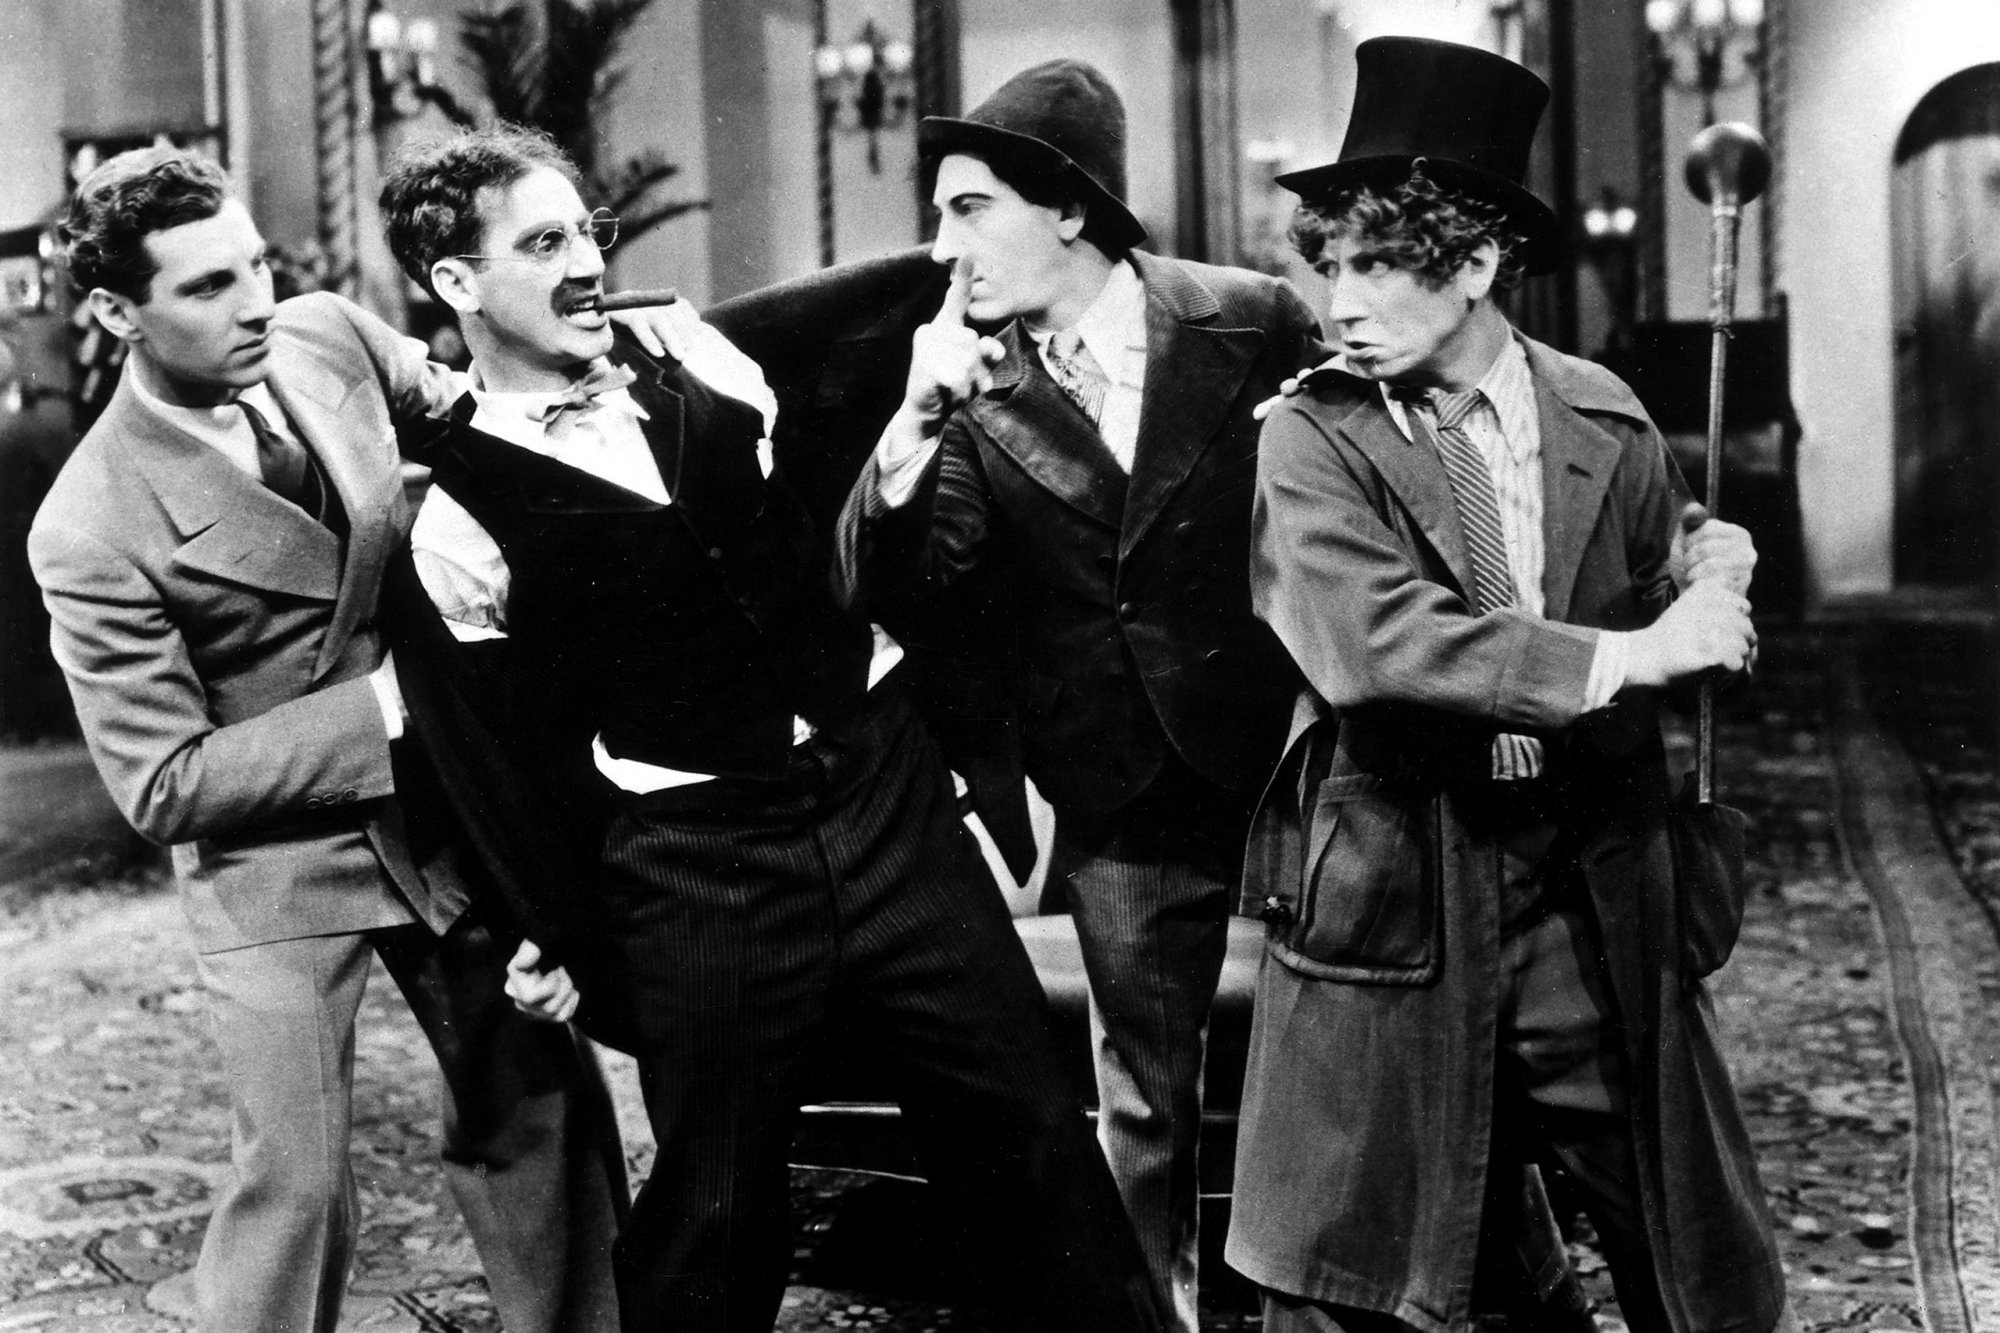 And if you split the id into multiple parts, you get the proto-typical chaotic intruders, the Marx Brothers...